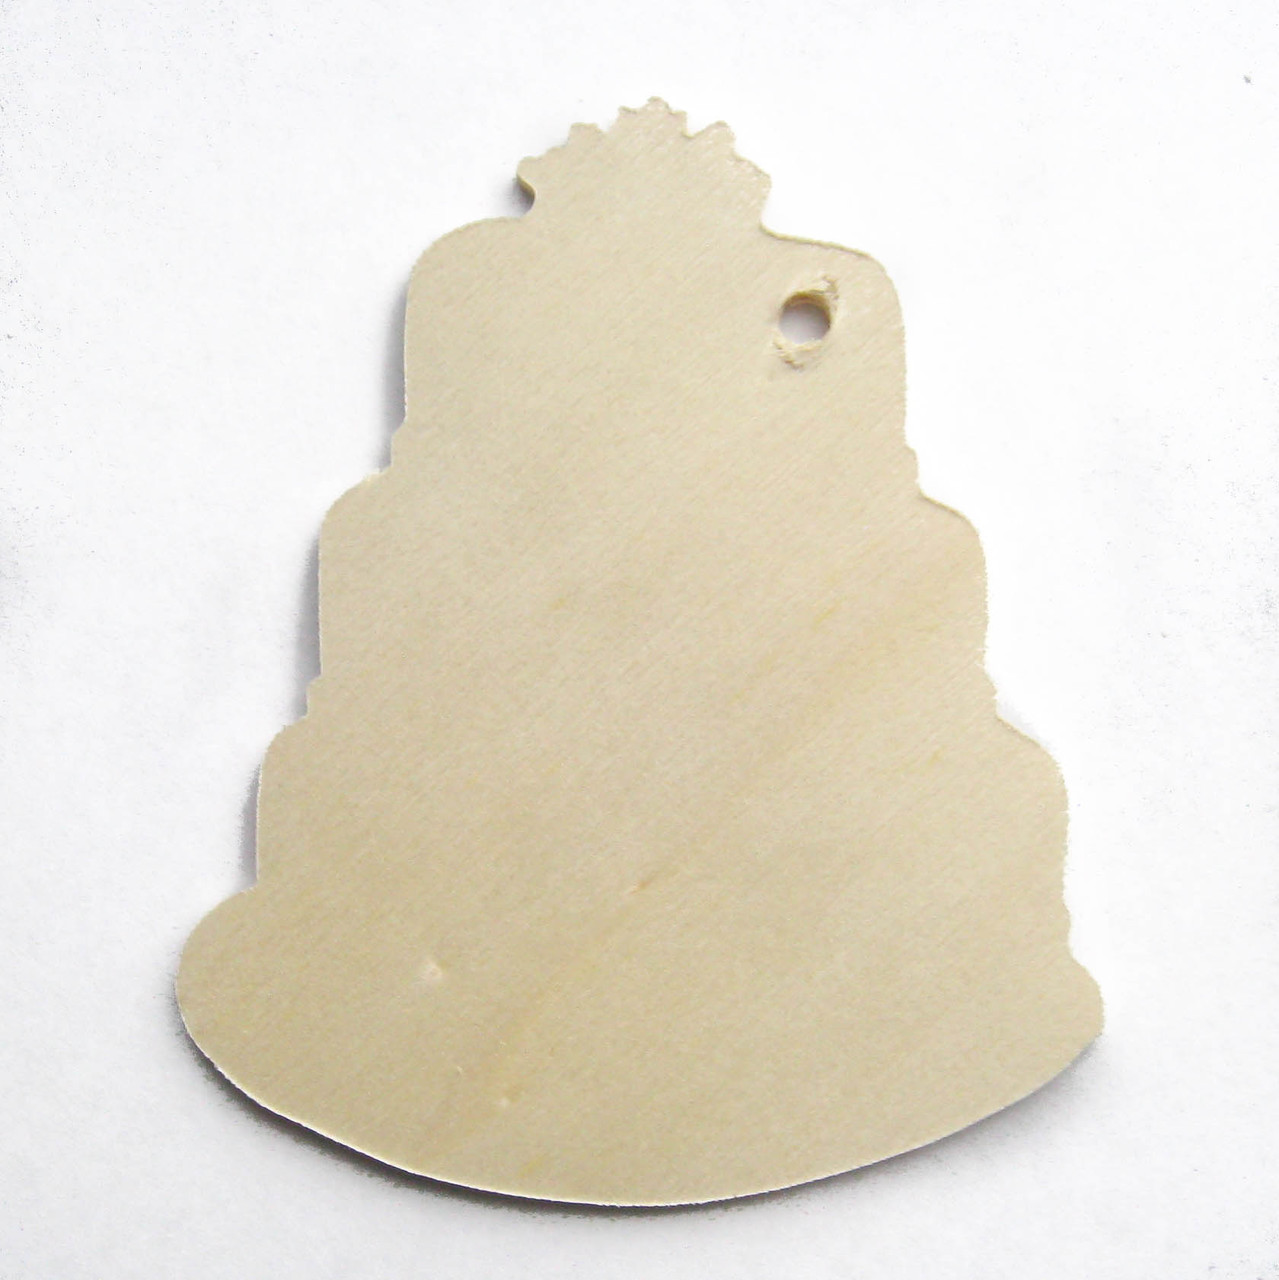 Unfinished birch wooden tag ornament wedding birthday cake shape cutout diy craft kit